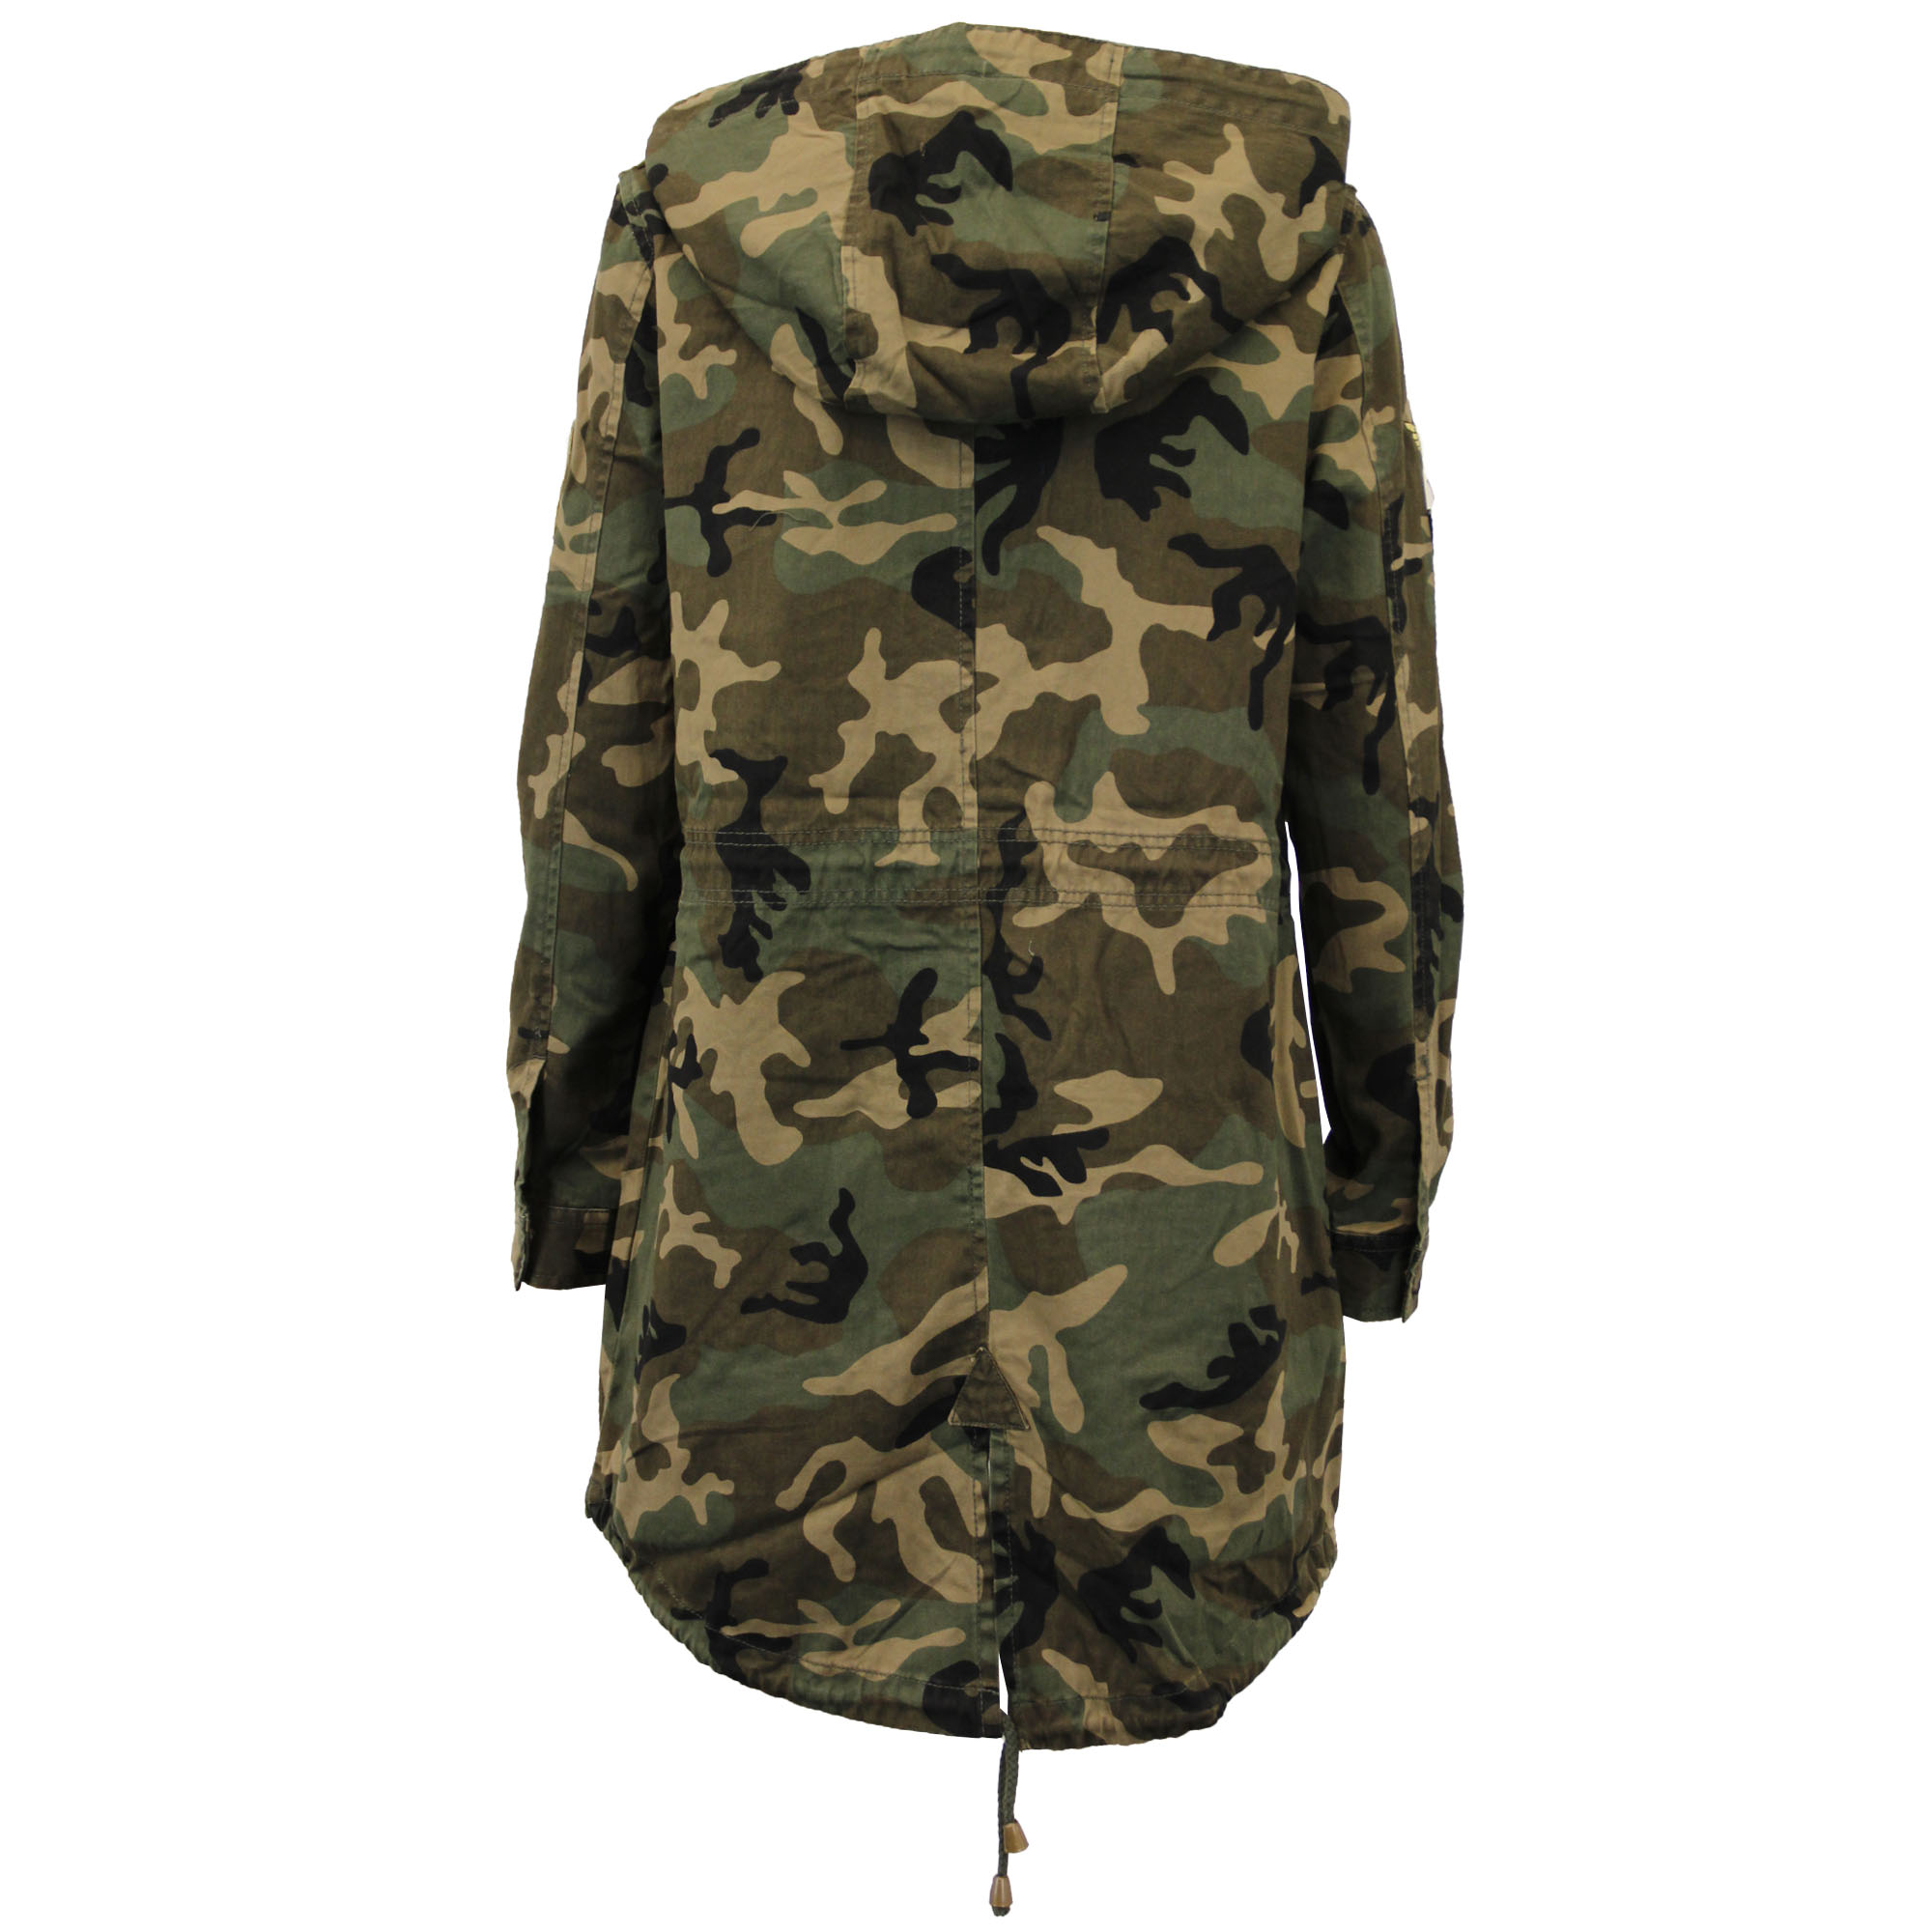 Womens size Large () winter camouflage coat. Has a detachable fur strip on the hood. It is well insulated. No rips or tears. Comes from smoke free, pet free home.